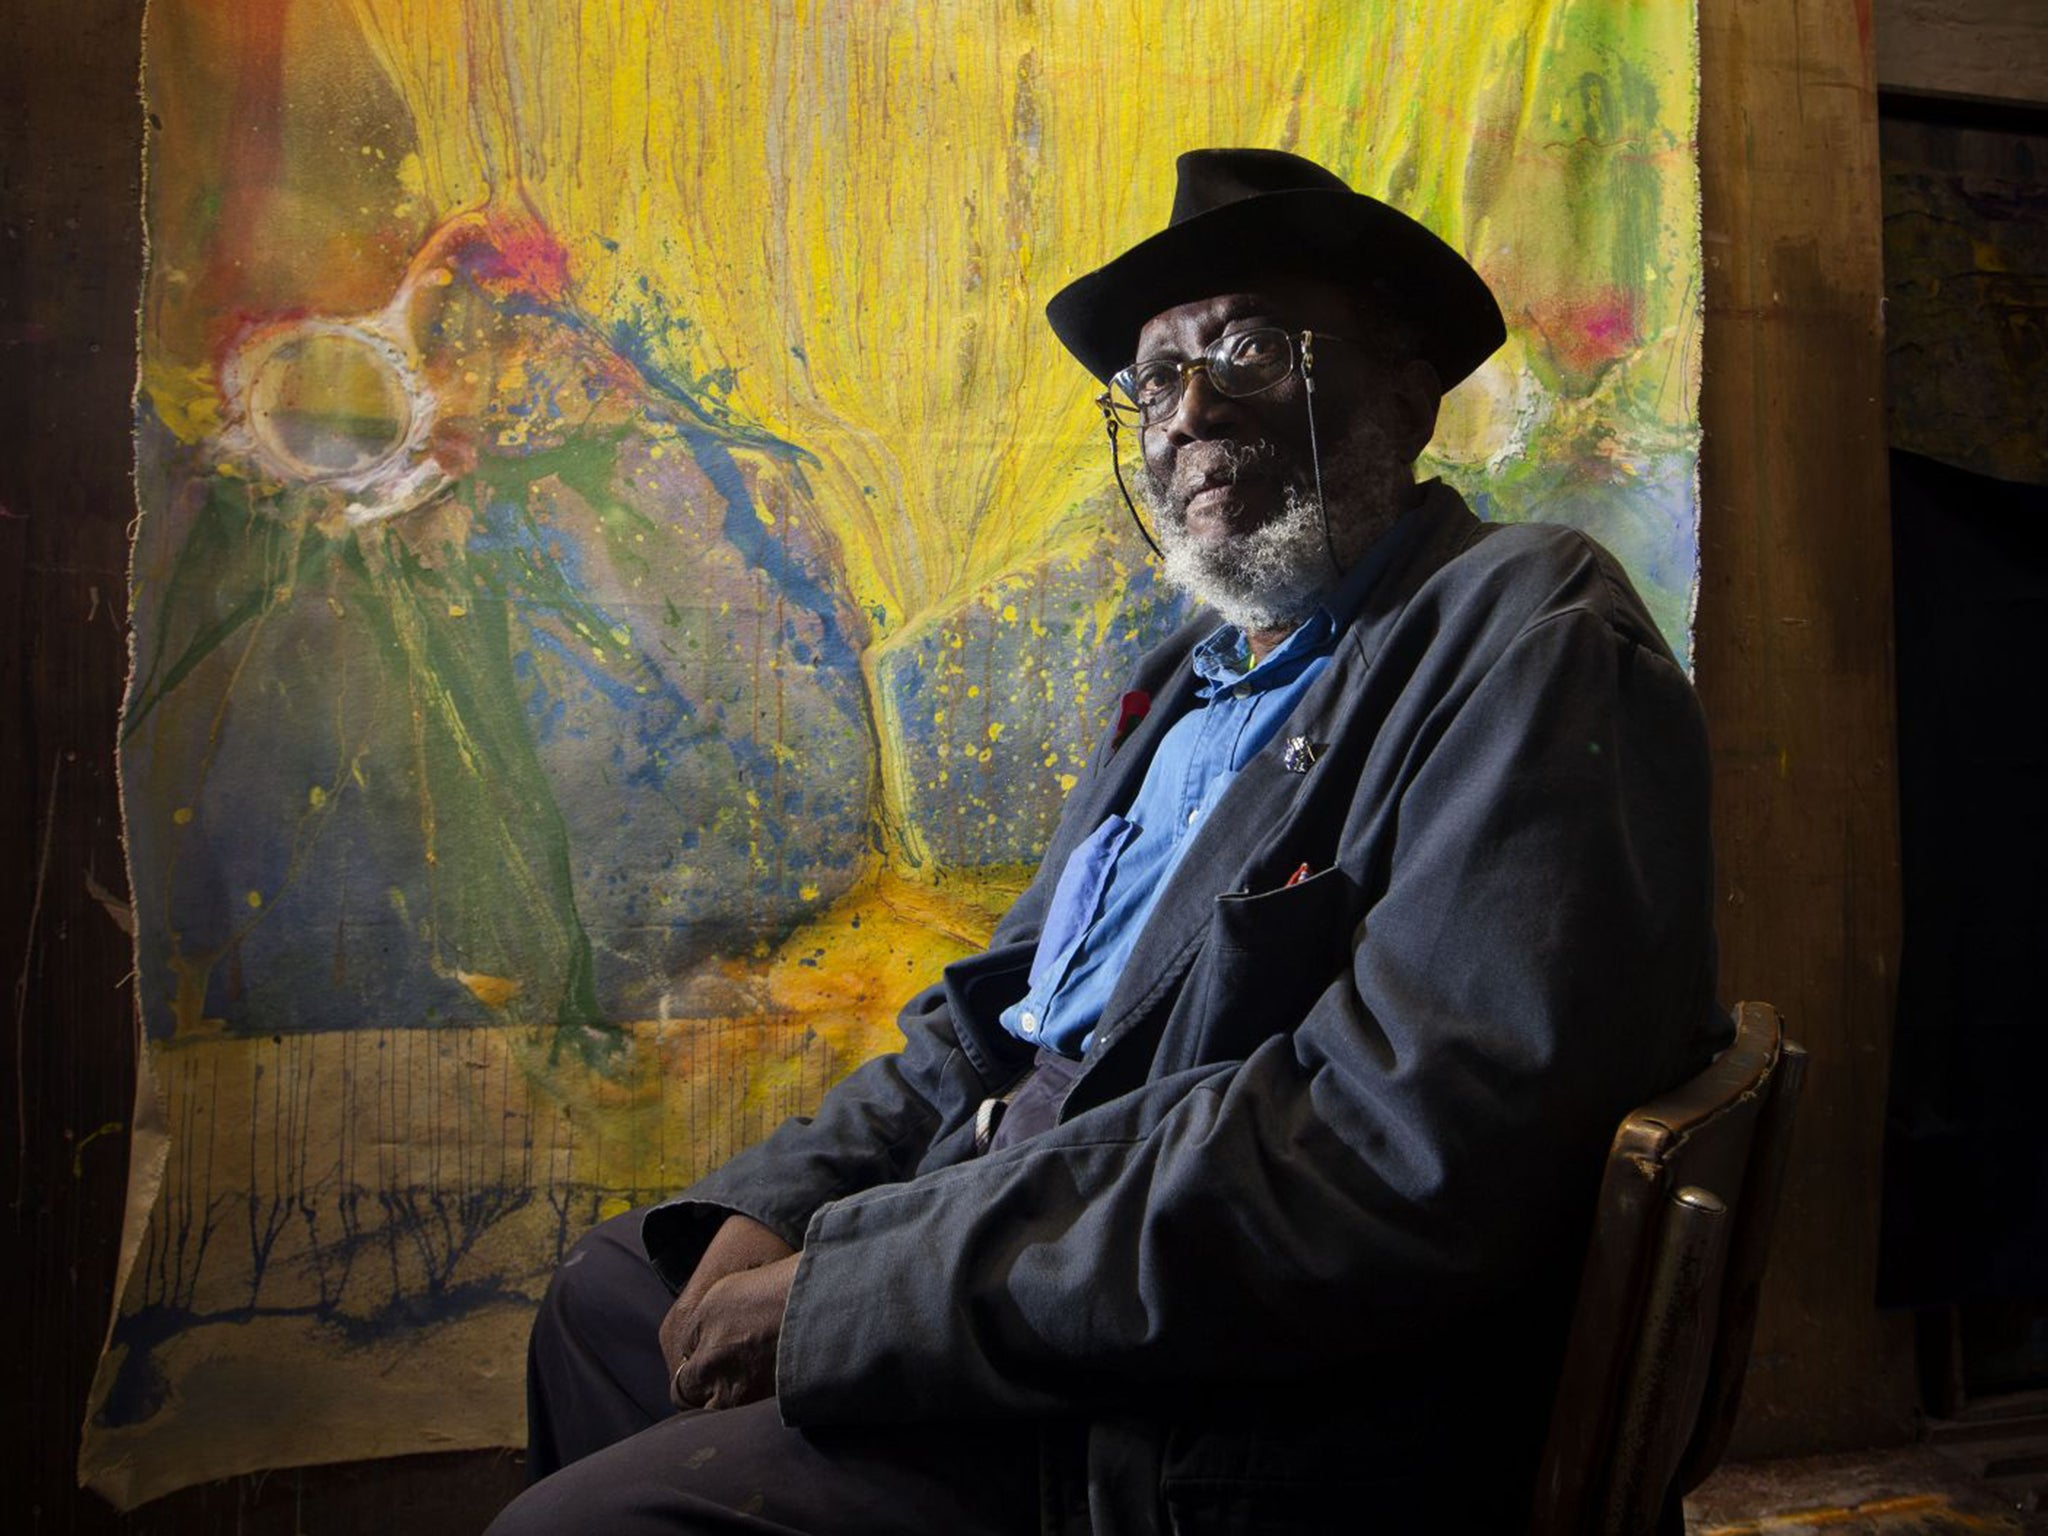 Forgotten history of black artists to be uncovered in £700,000 curation project